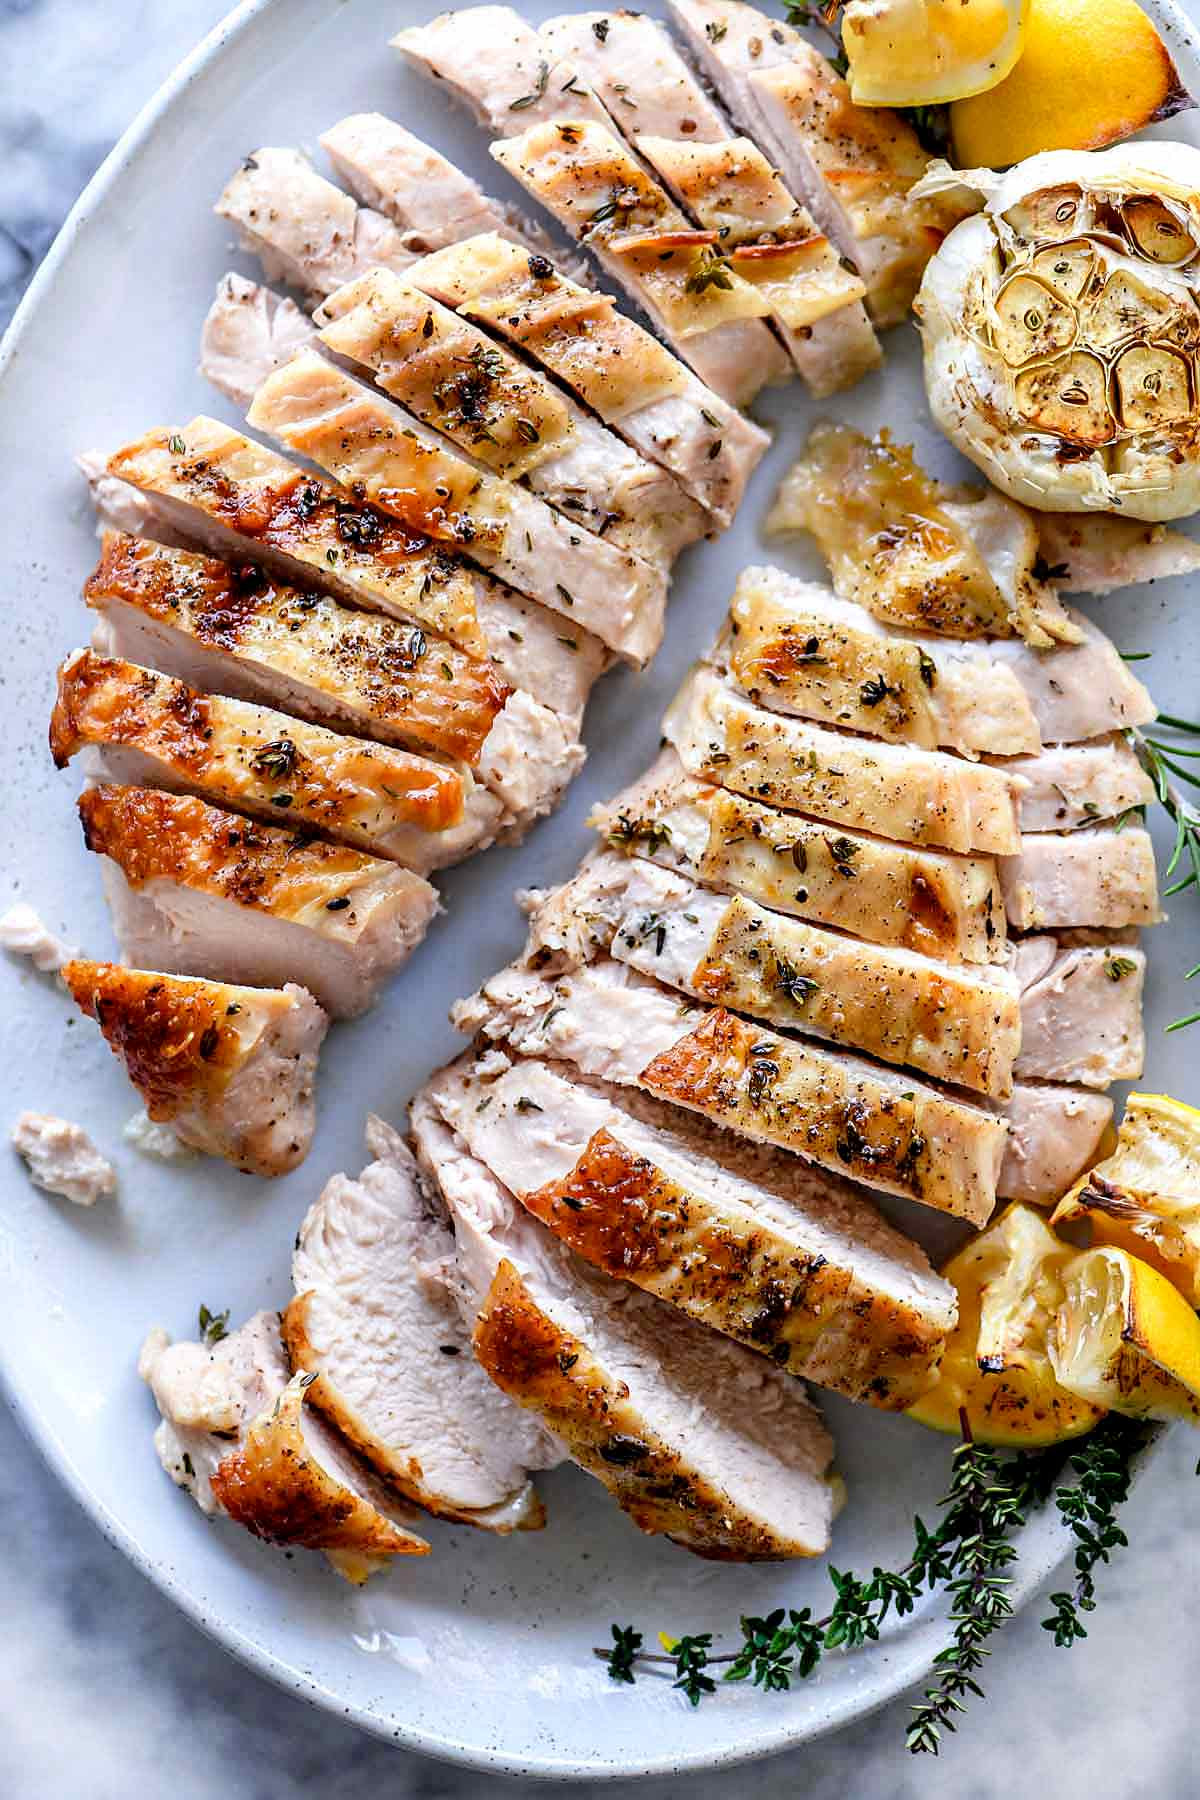 Turkey Breast Recipe For Thanksgiving  The Secret to Juicy Roast Turkey Breast